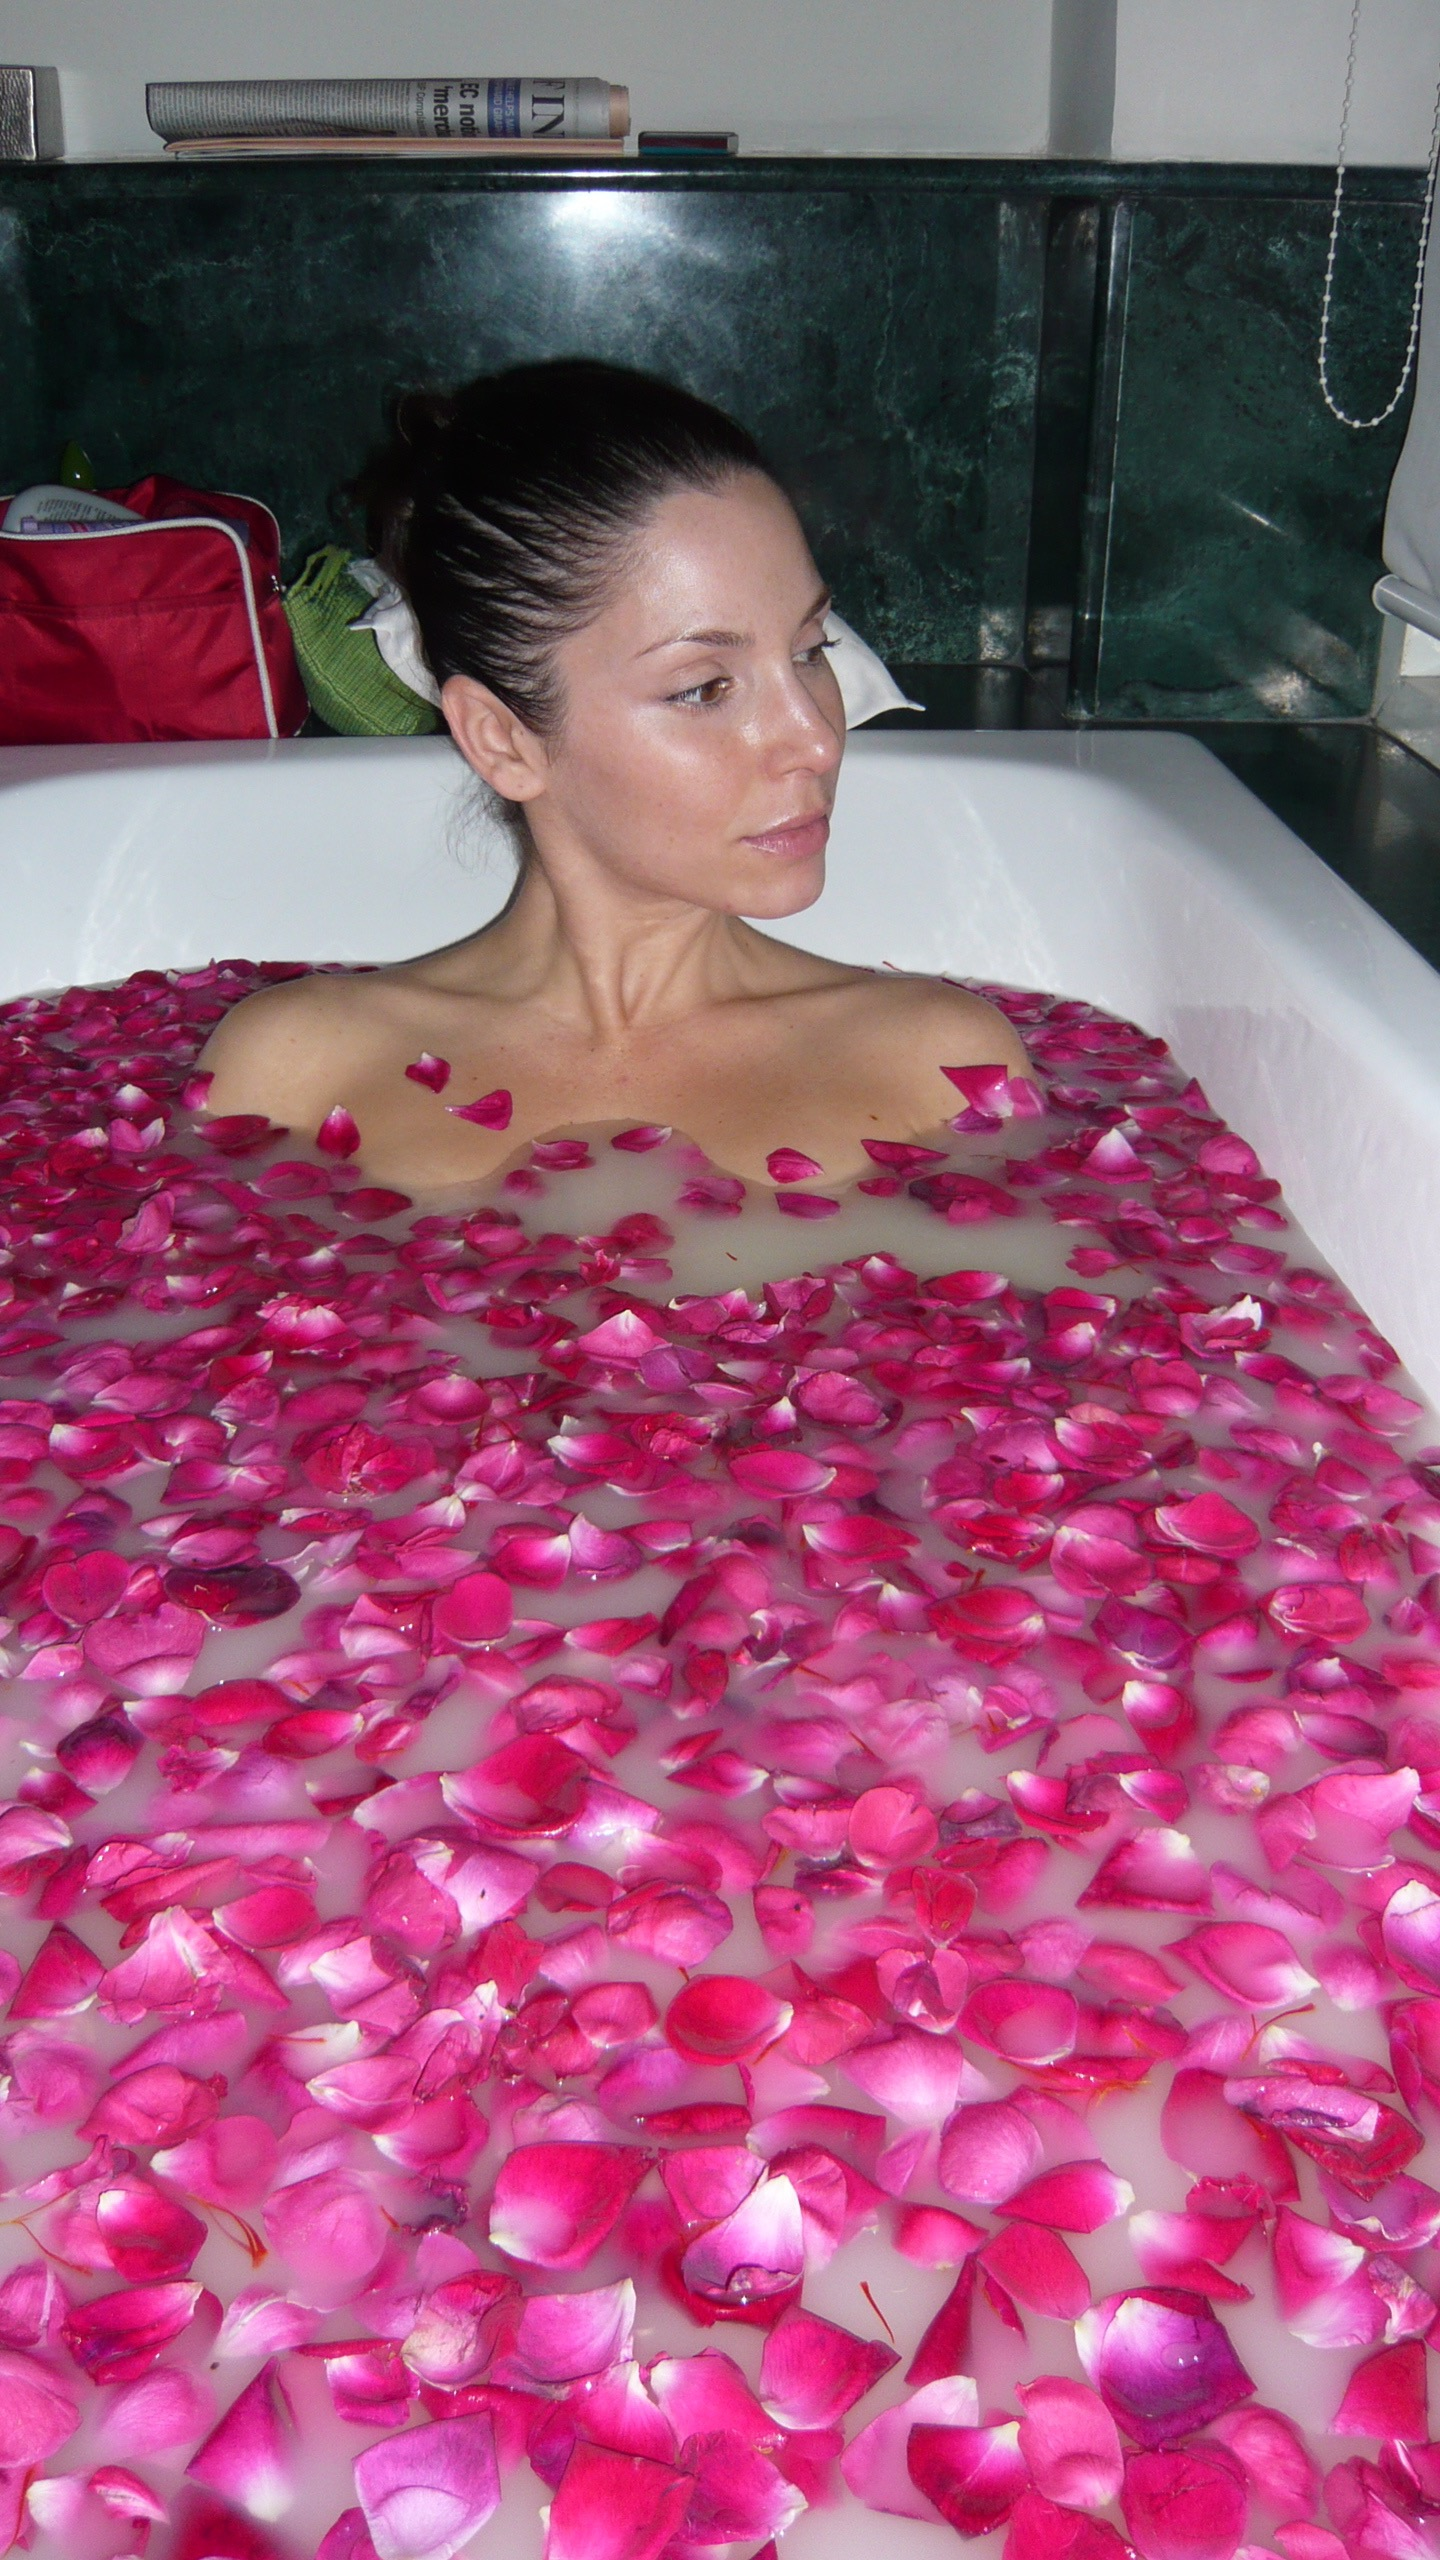 Oh yeah this actually happened once upon a time! A rose, turmeric, coconut bath in India!. Now if I could only have that young, wrinkle free skin again...